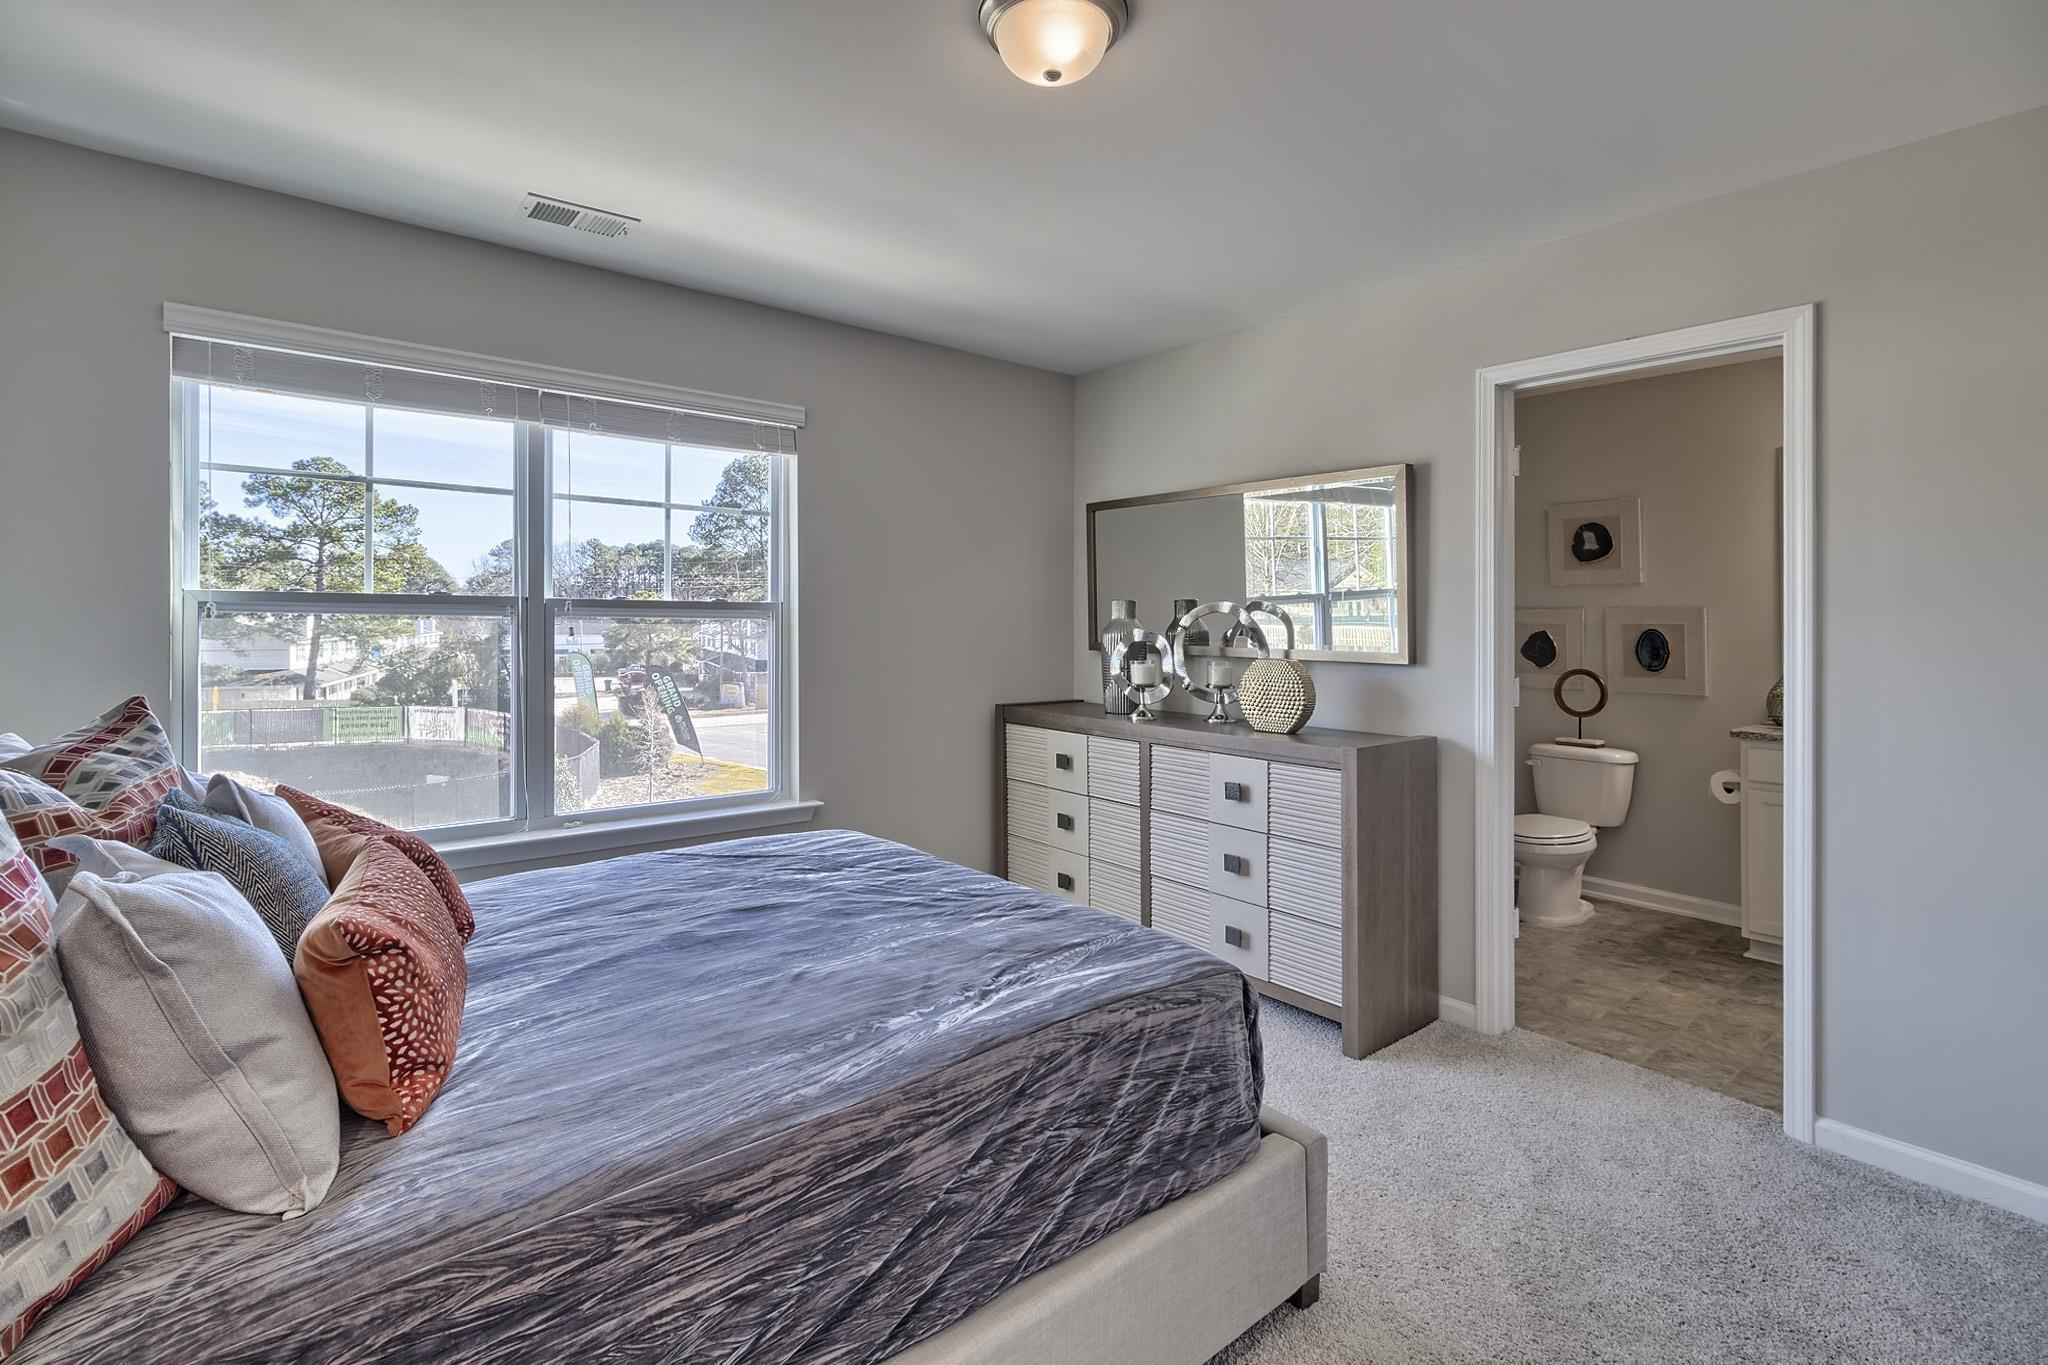 Bedroom featured in the Harbison Grove 3  By McGuinn Hybrid Homes in Columbia, SC